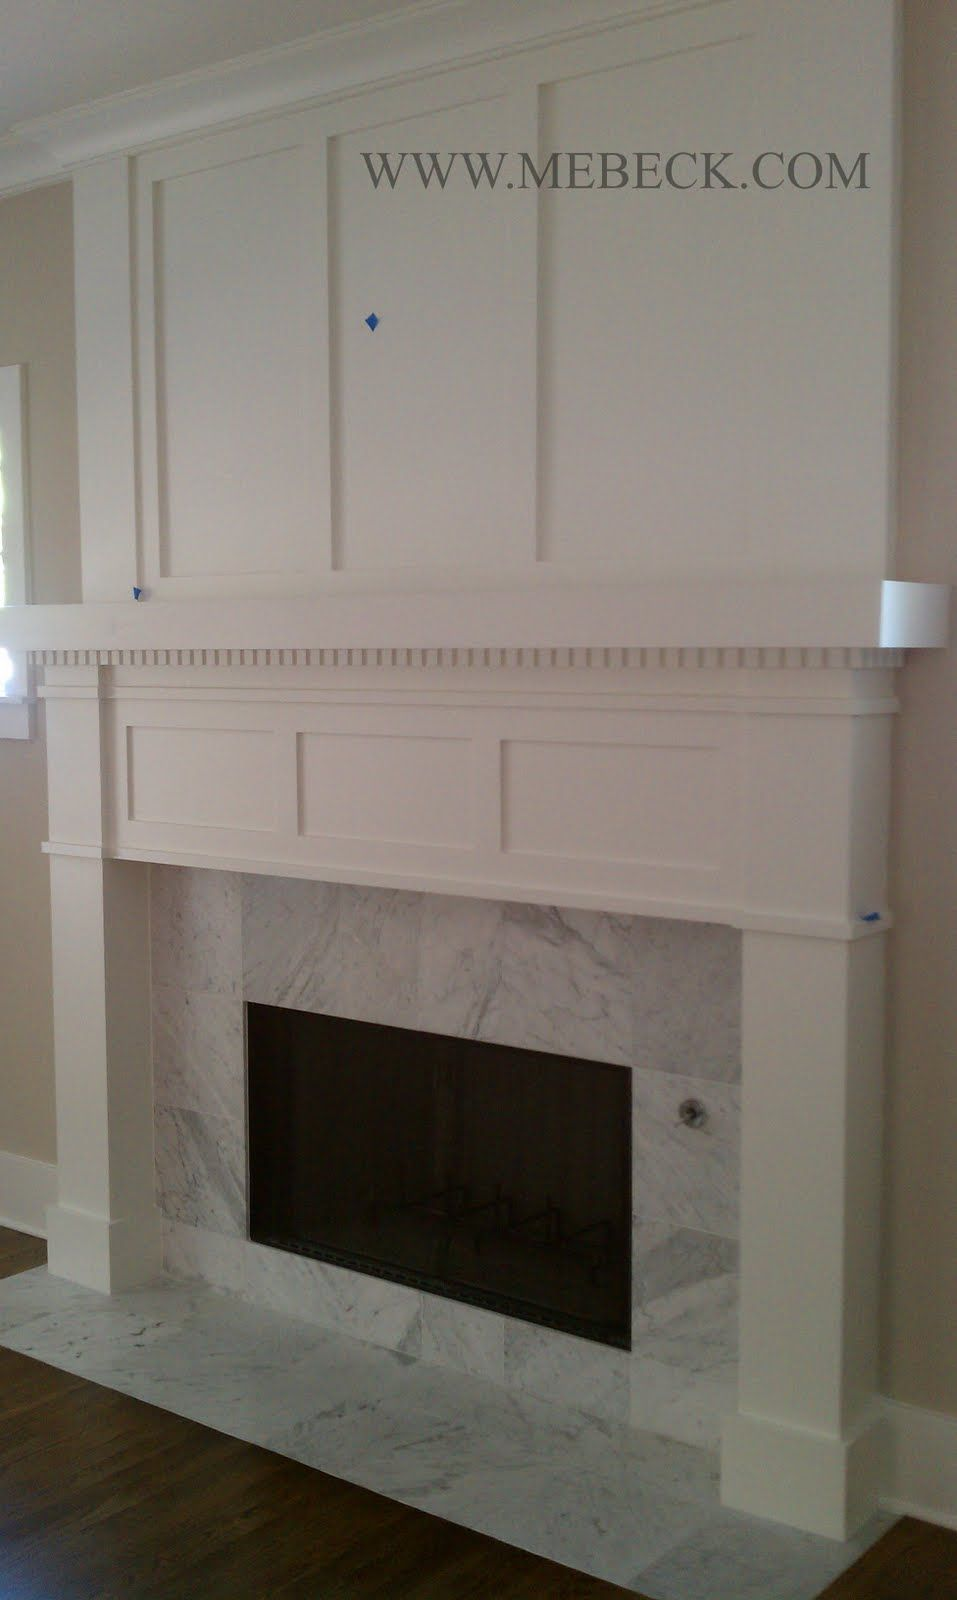 Live Beautifully July 2011 Home Fireplace Fireplace Surrounds Fireplace Trim